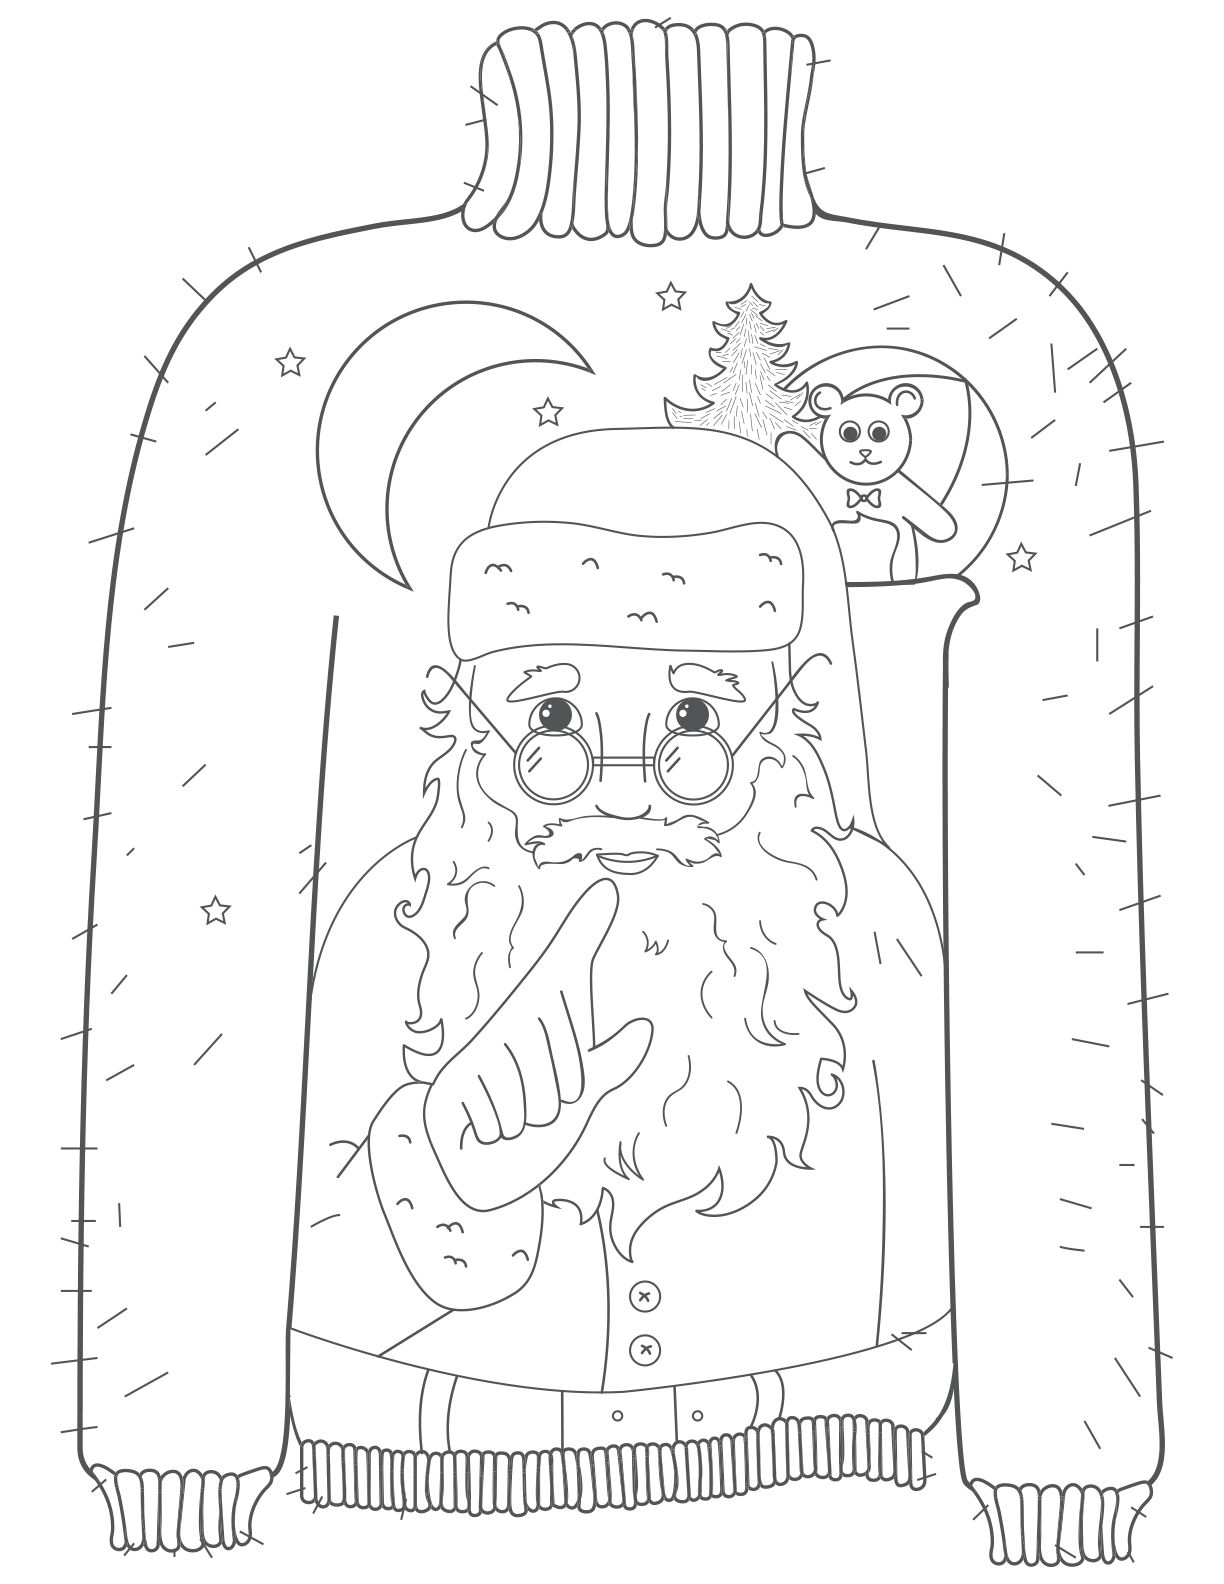 whispering santa ugly christmas sweater coloring page how ugly